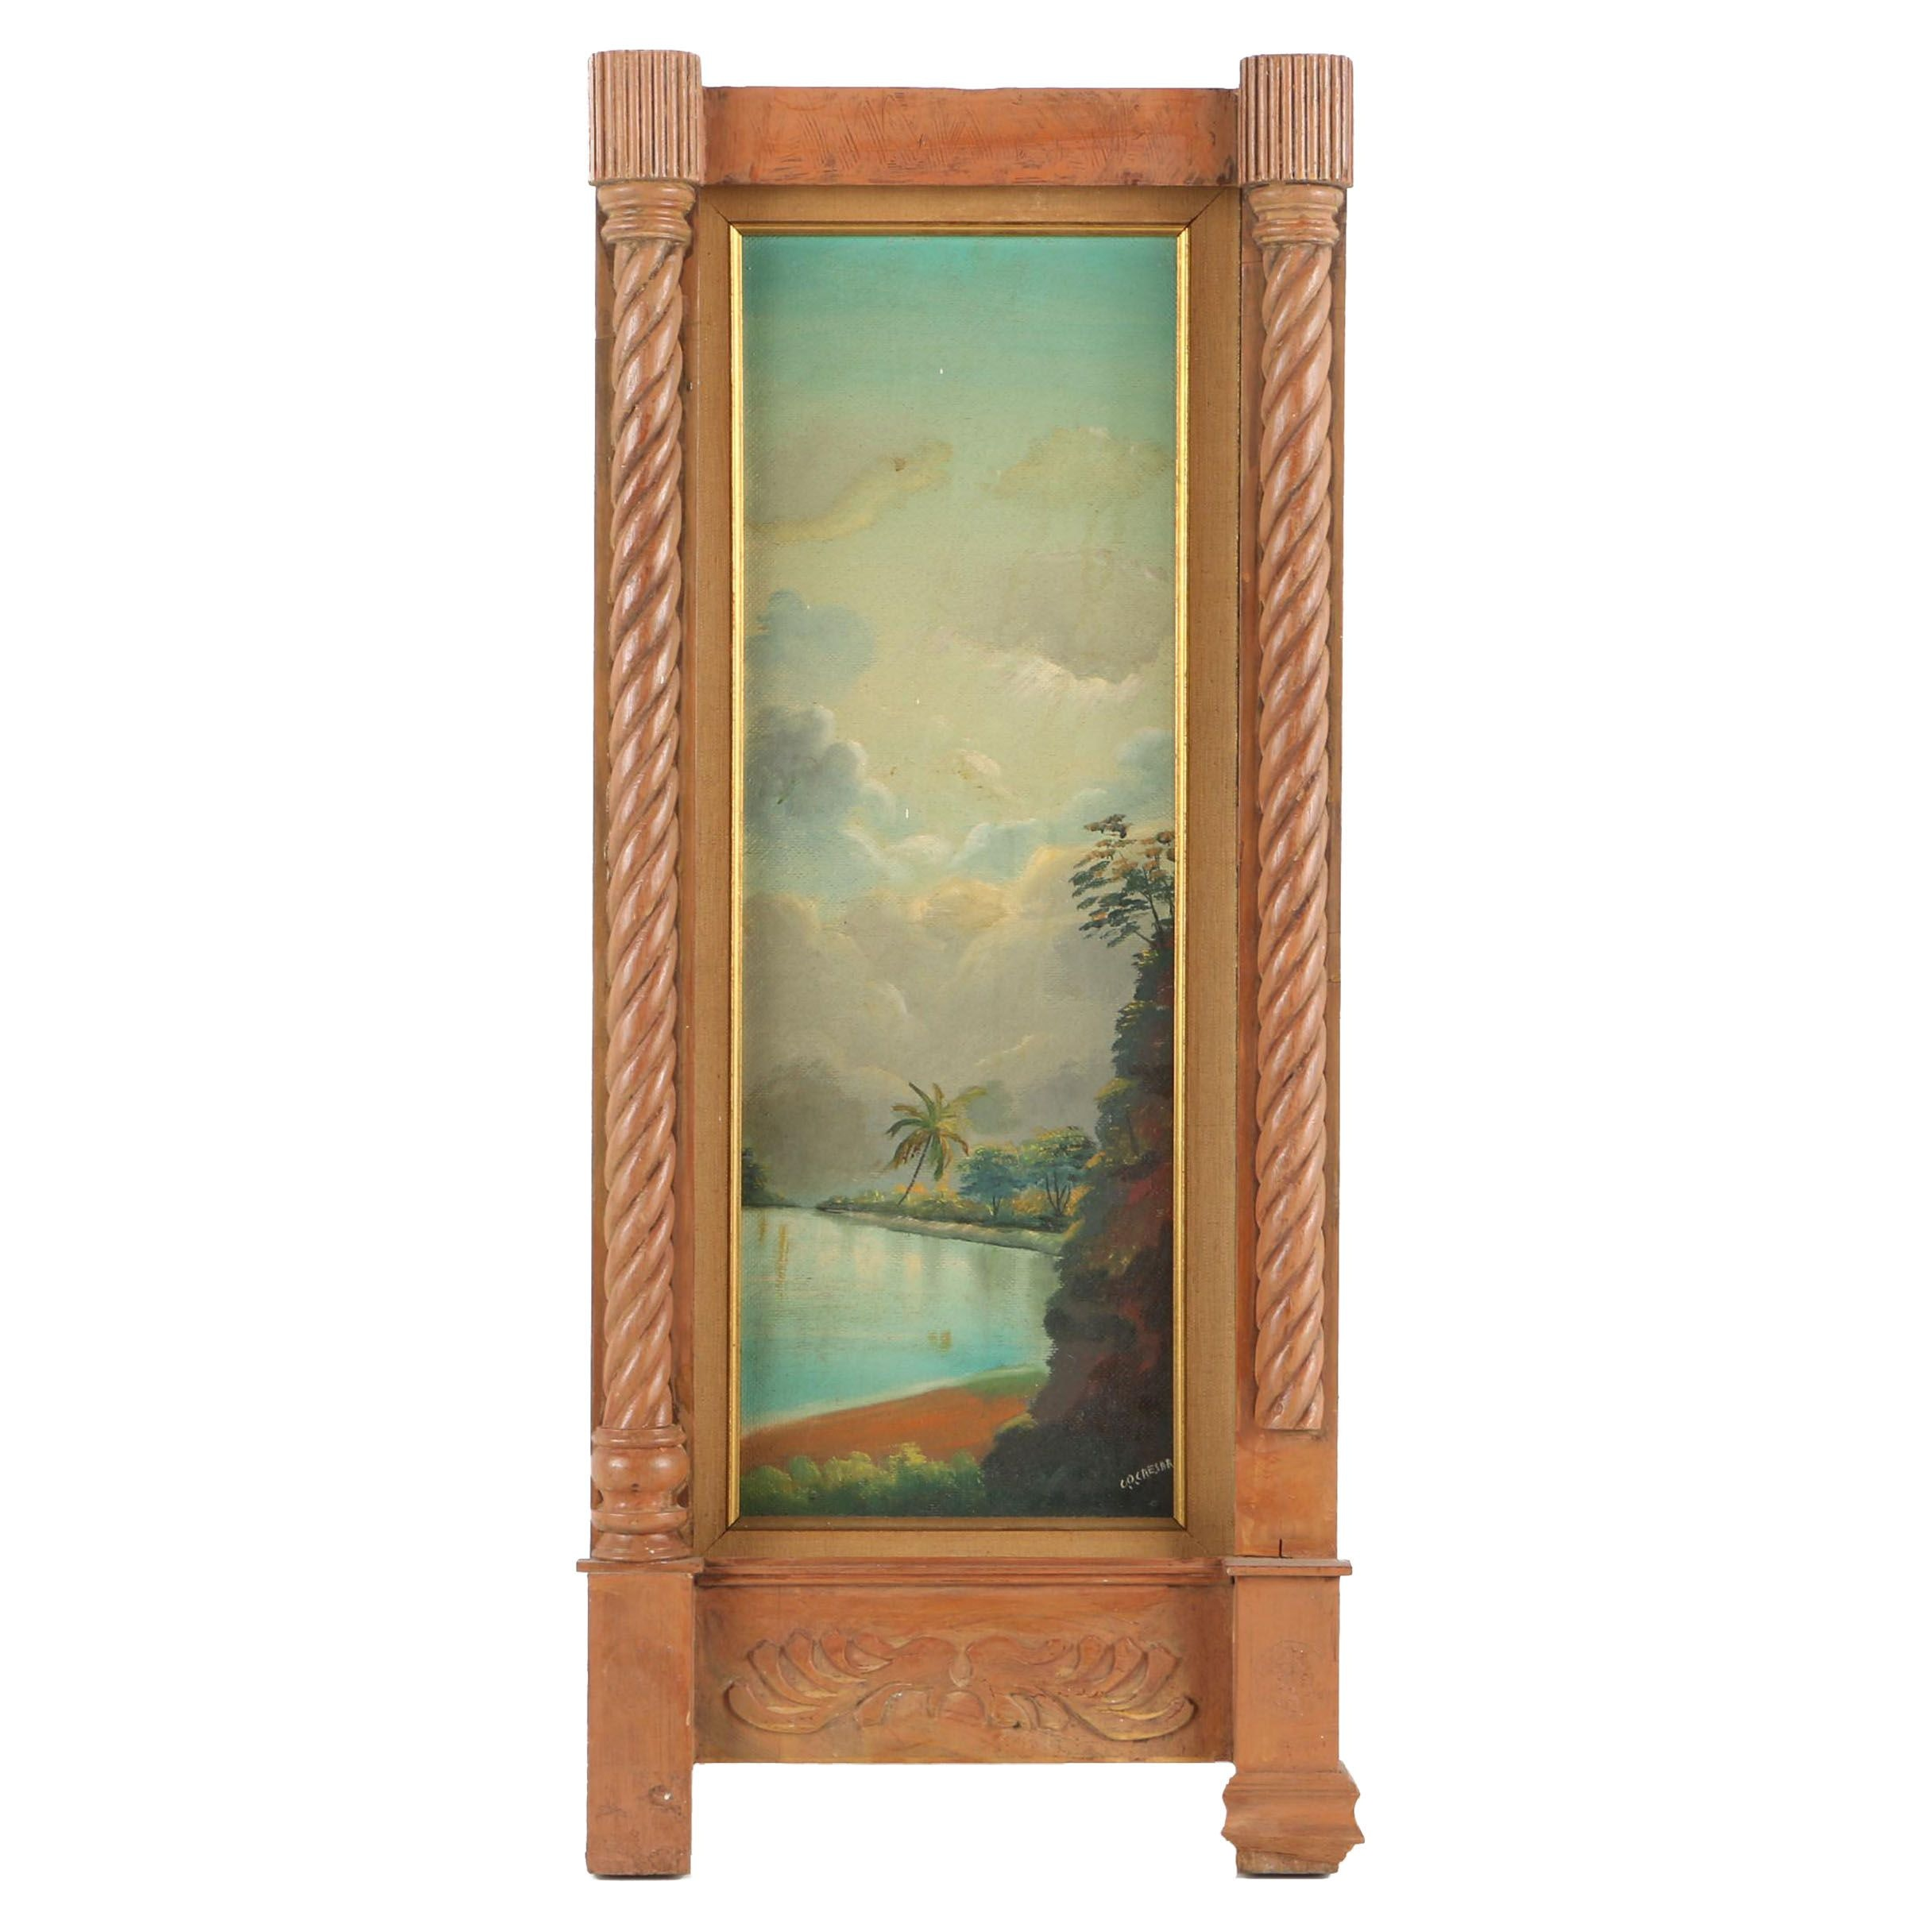 G.O. Caesar Oil Painting on Canvas Board of Tropical Landscape at Twilight